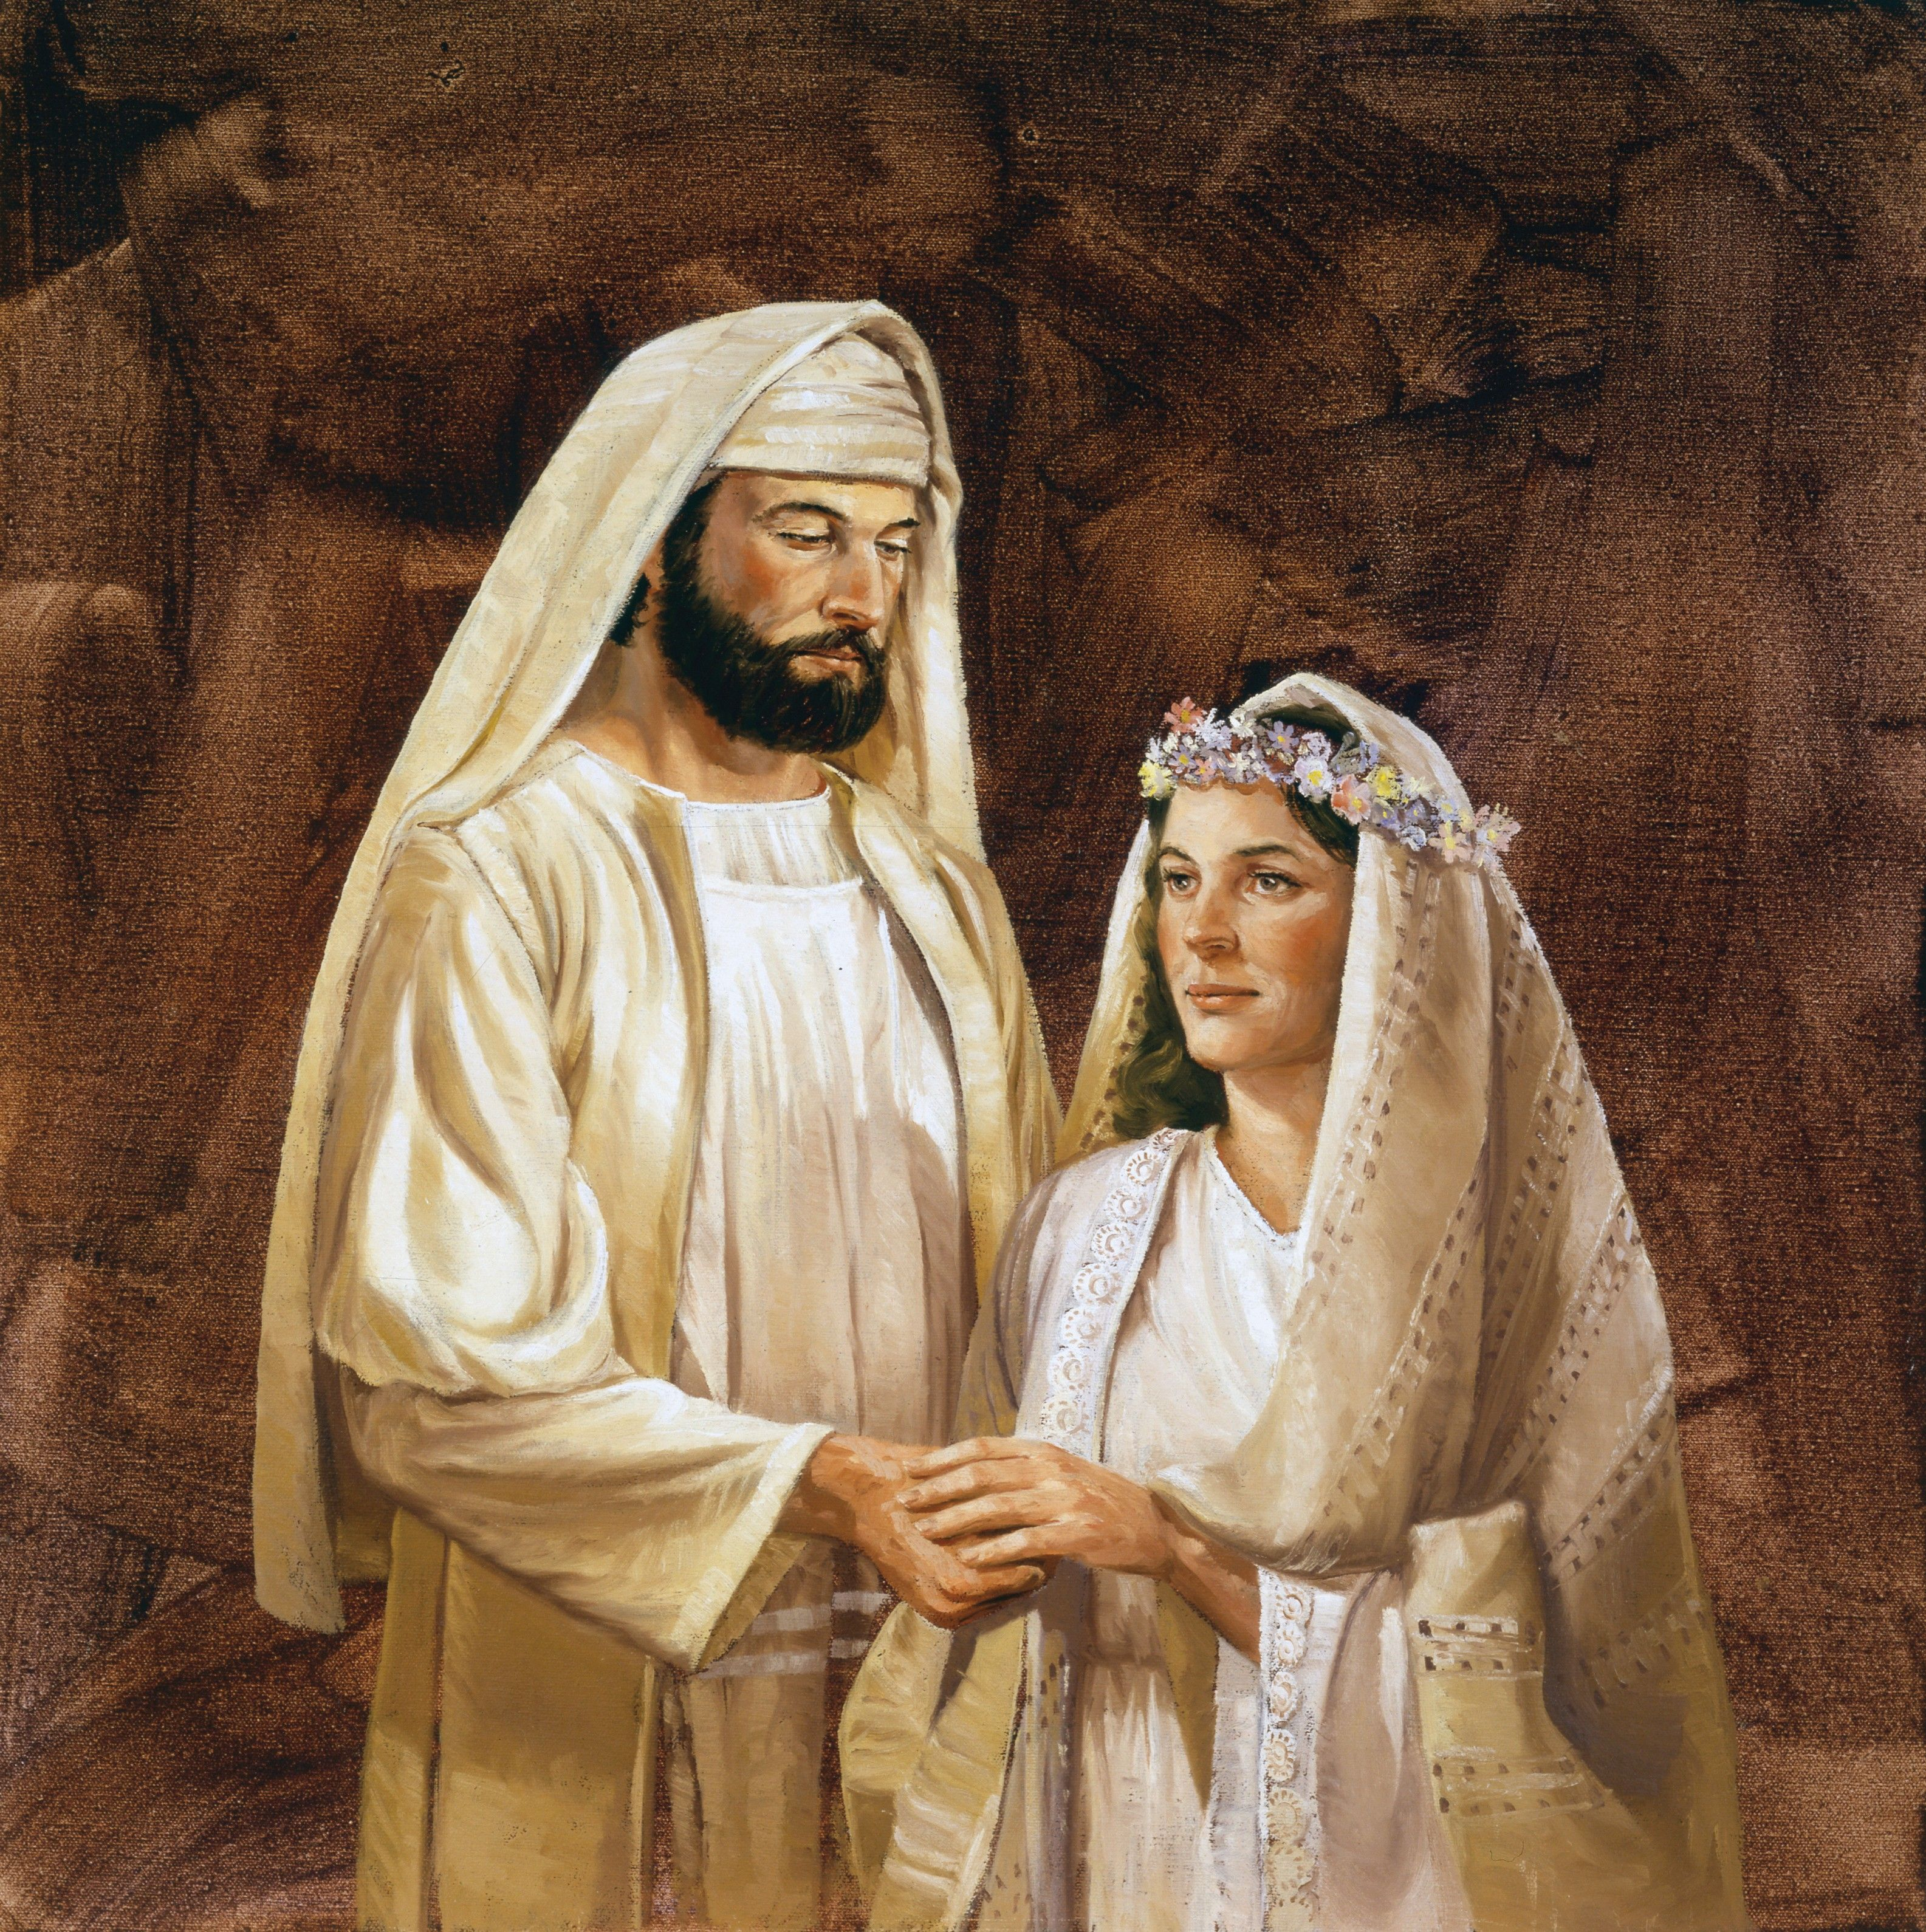 A depiction of a New Testament–era bride and groom, by Lyle Beddes.